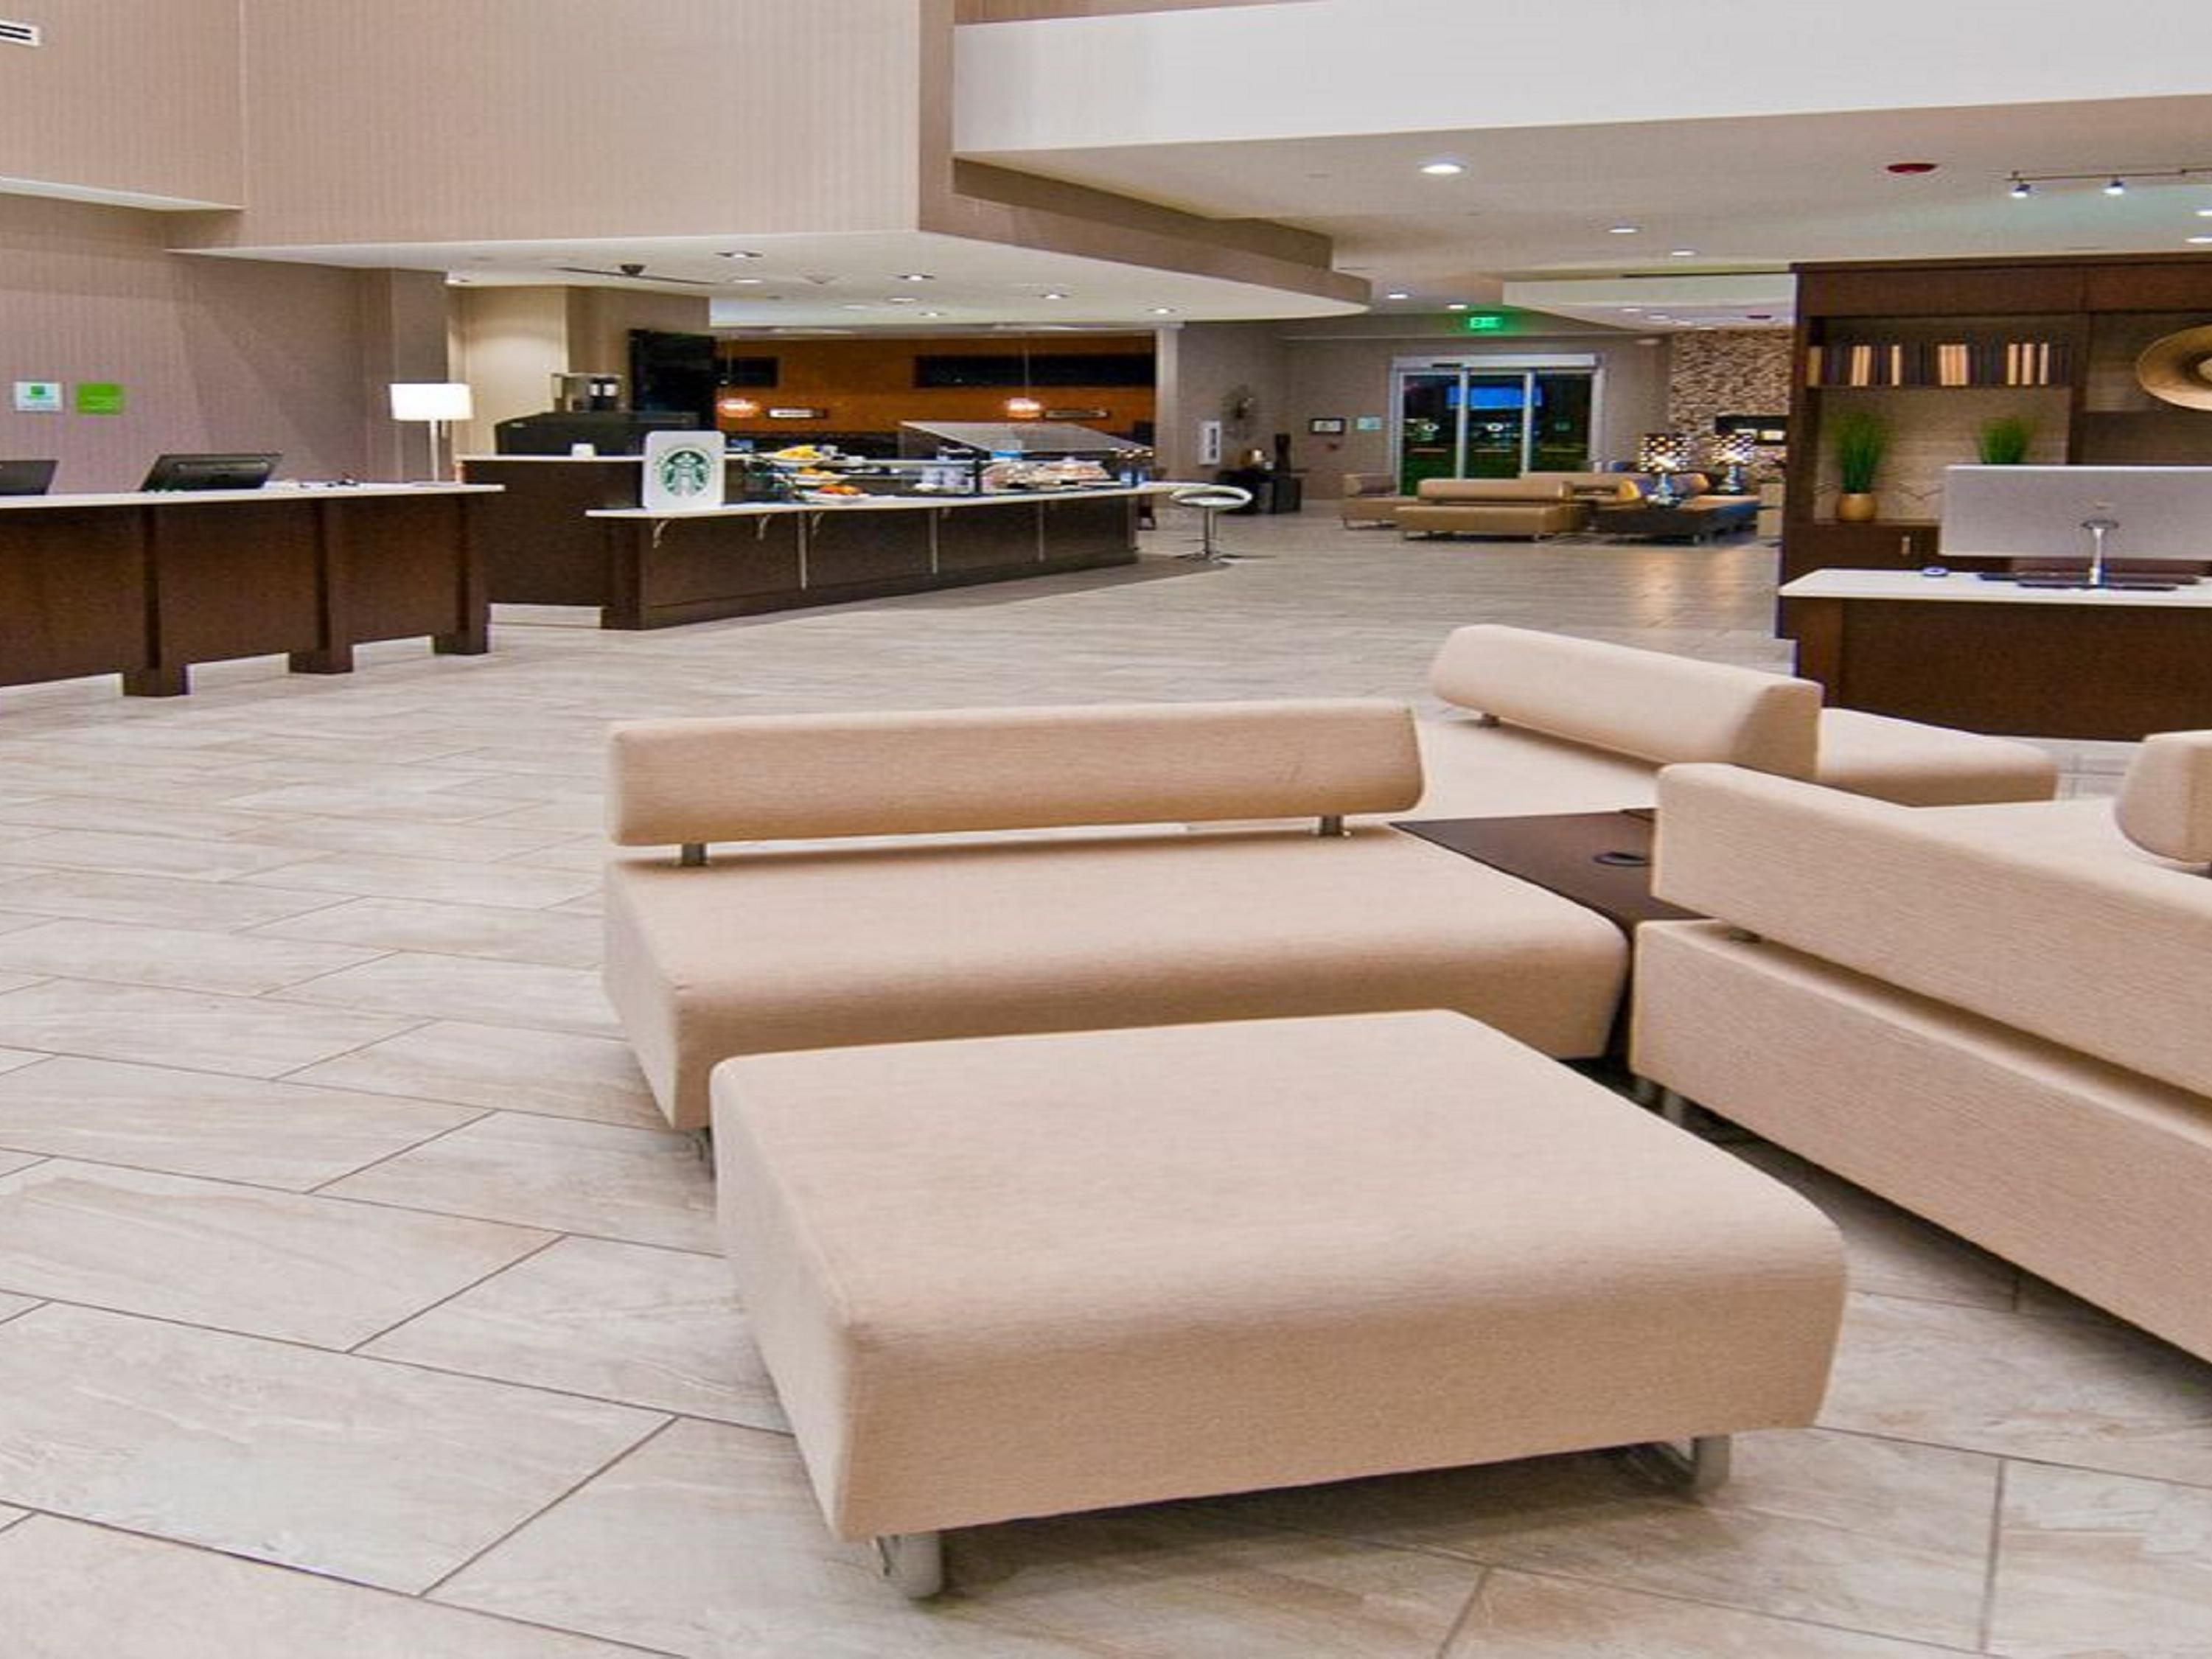 Take a break in our spacious lobby